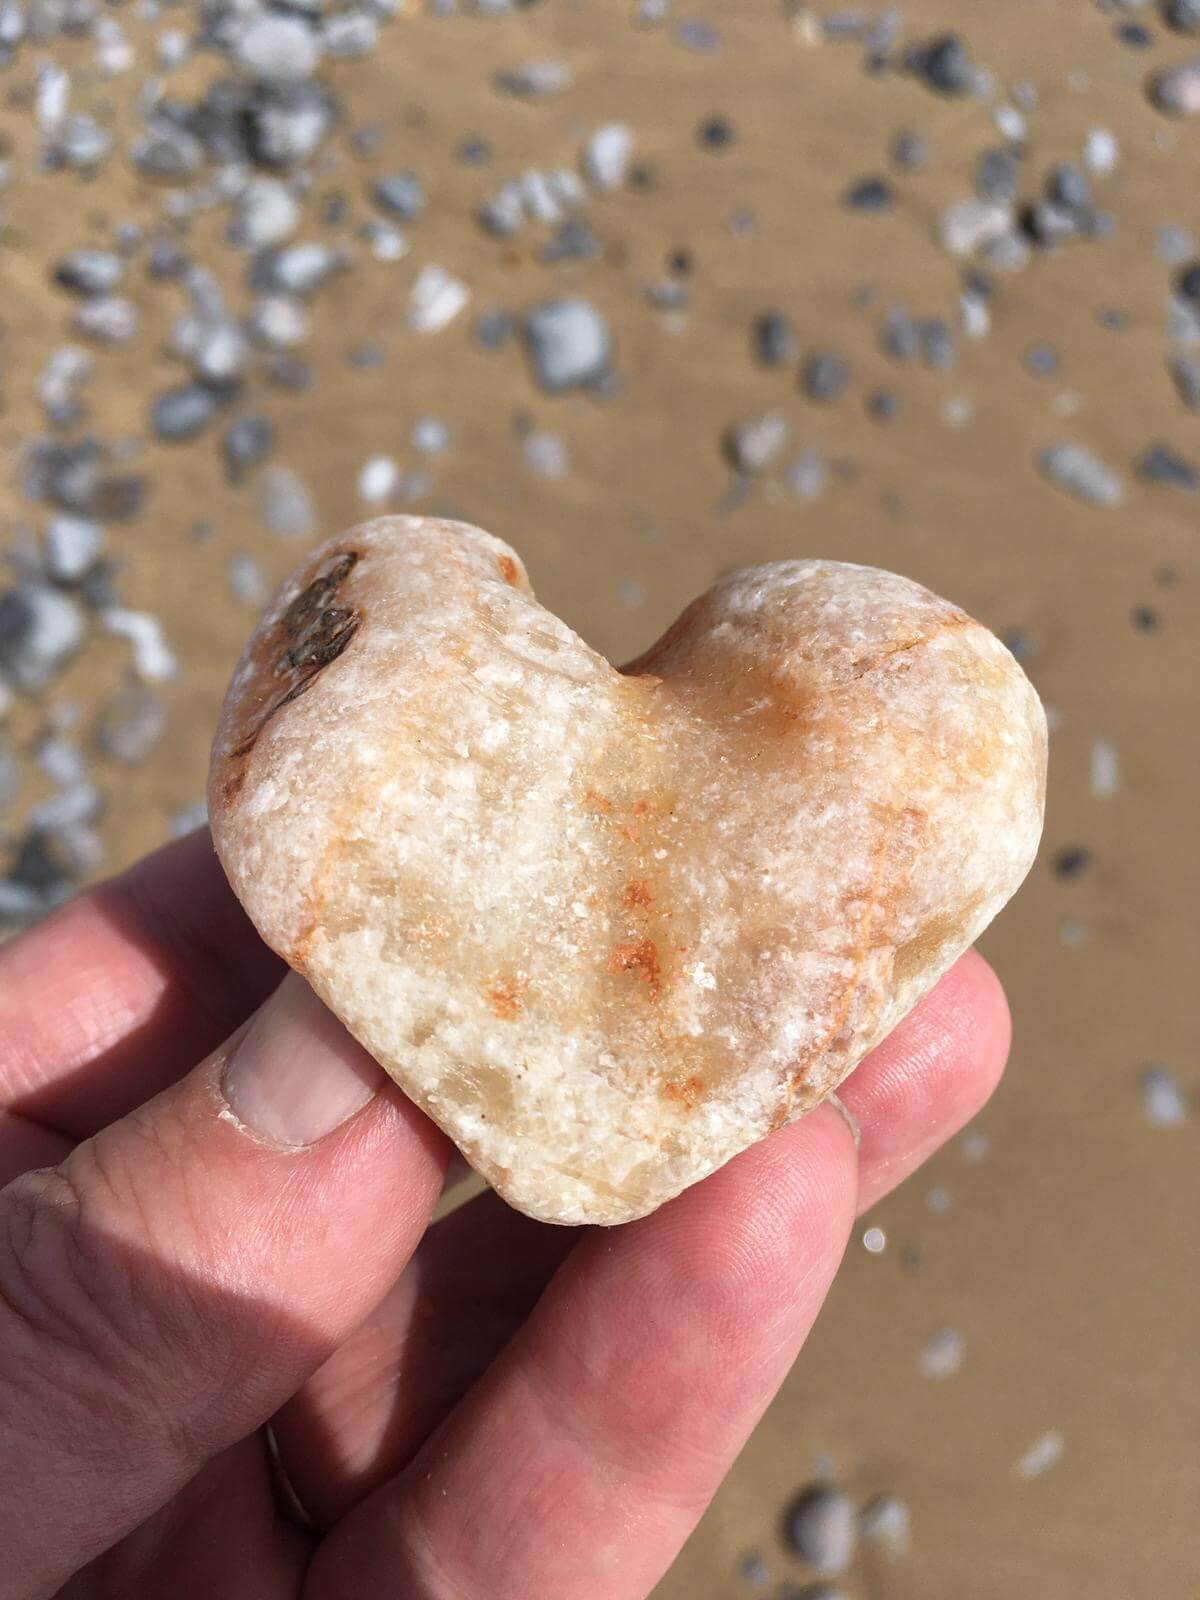 A stone found while walking on the beach in Swansea